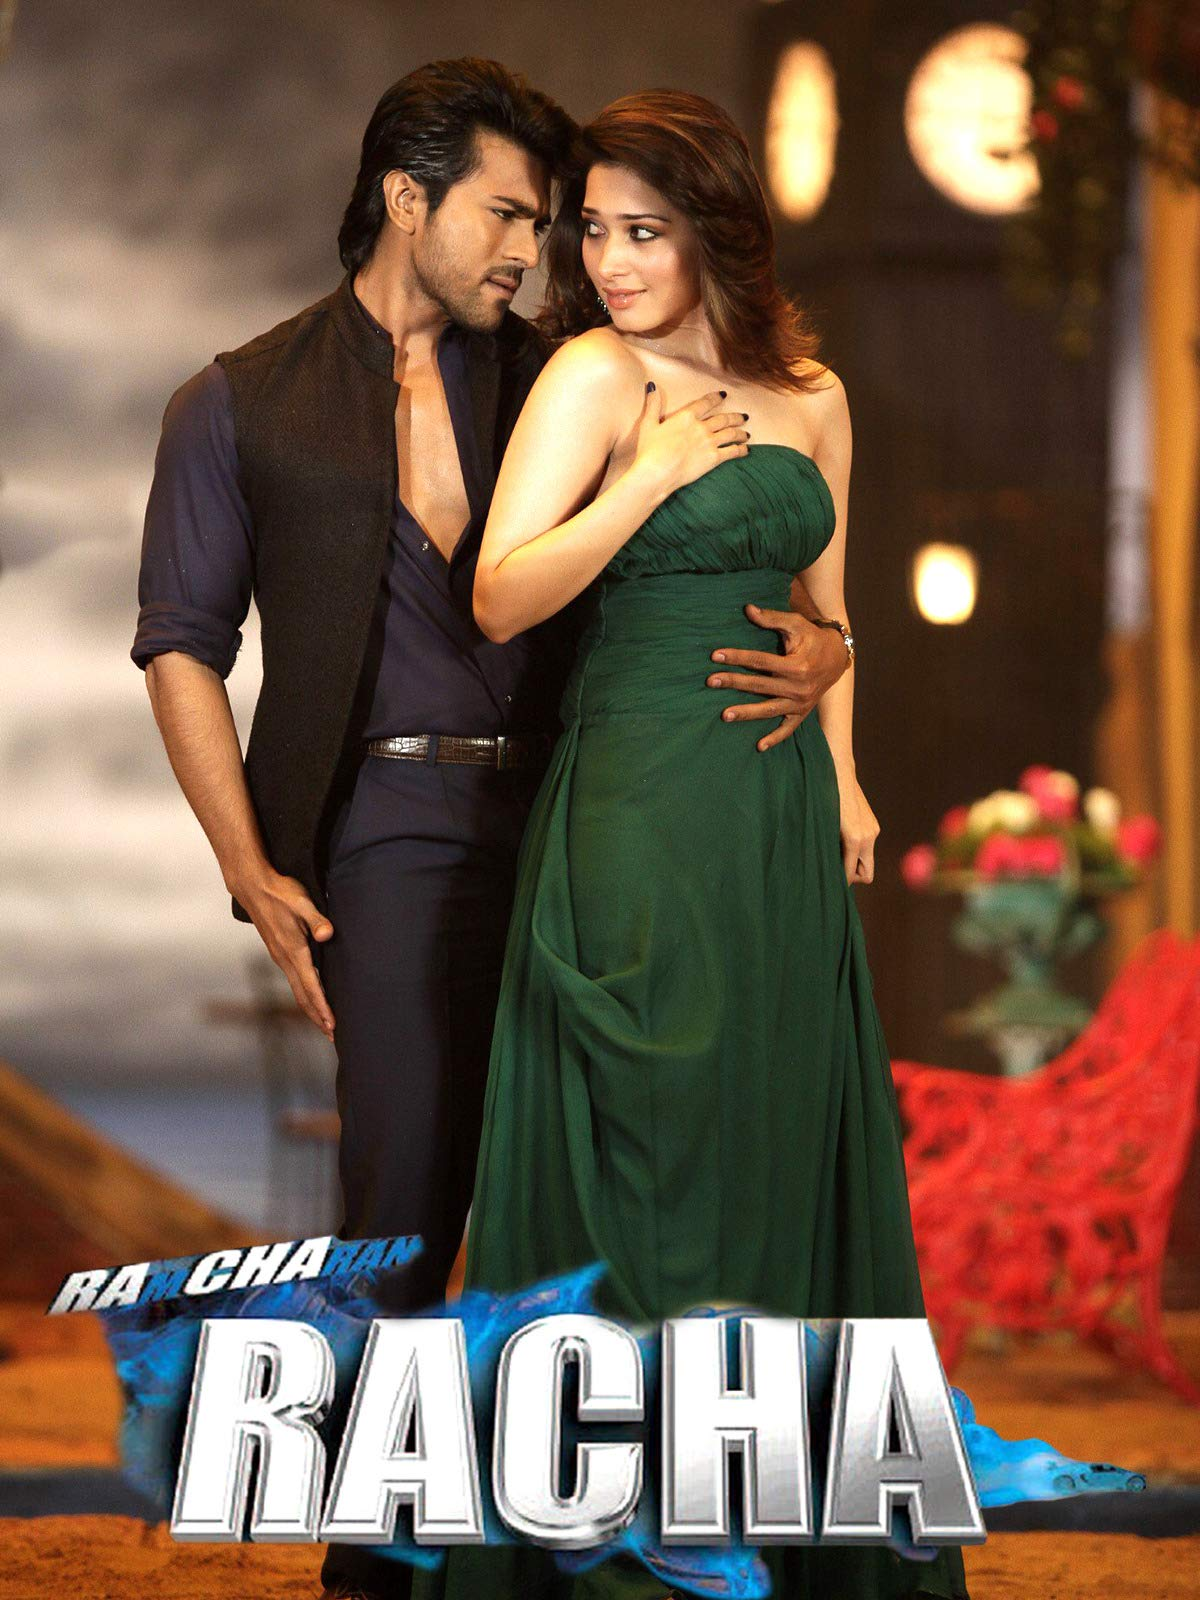 Image result for racha movie